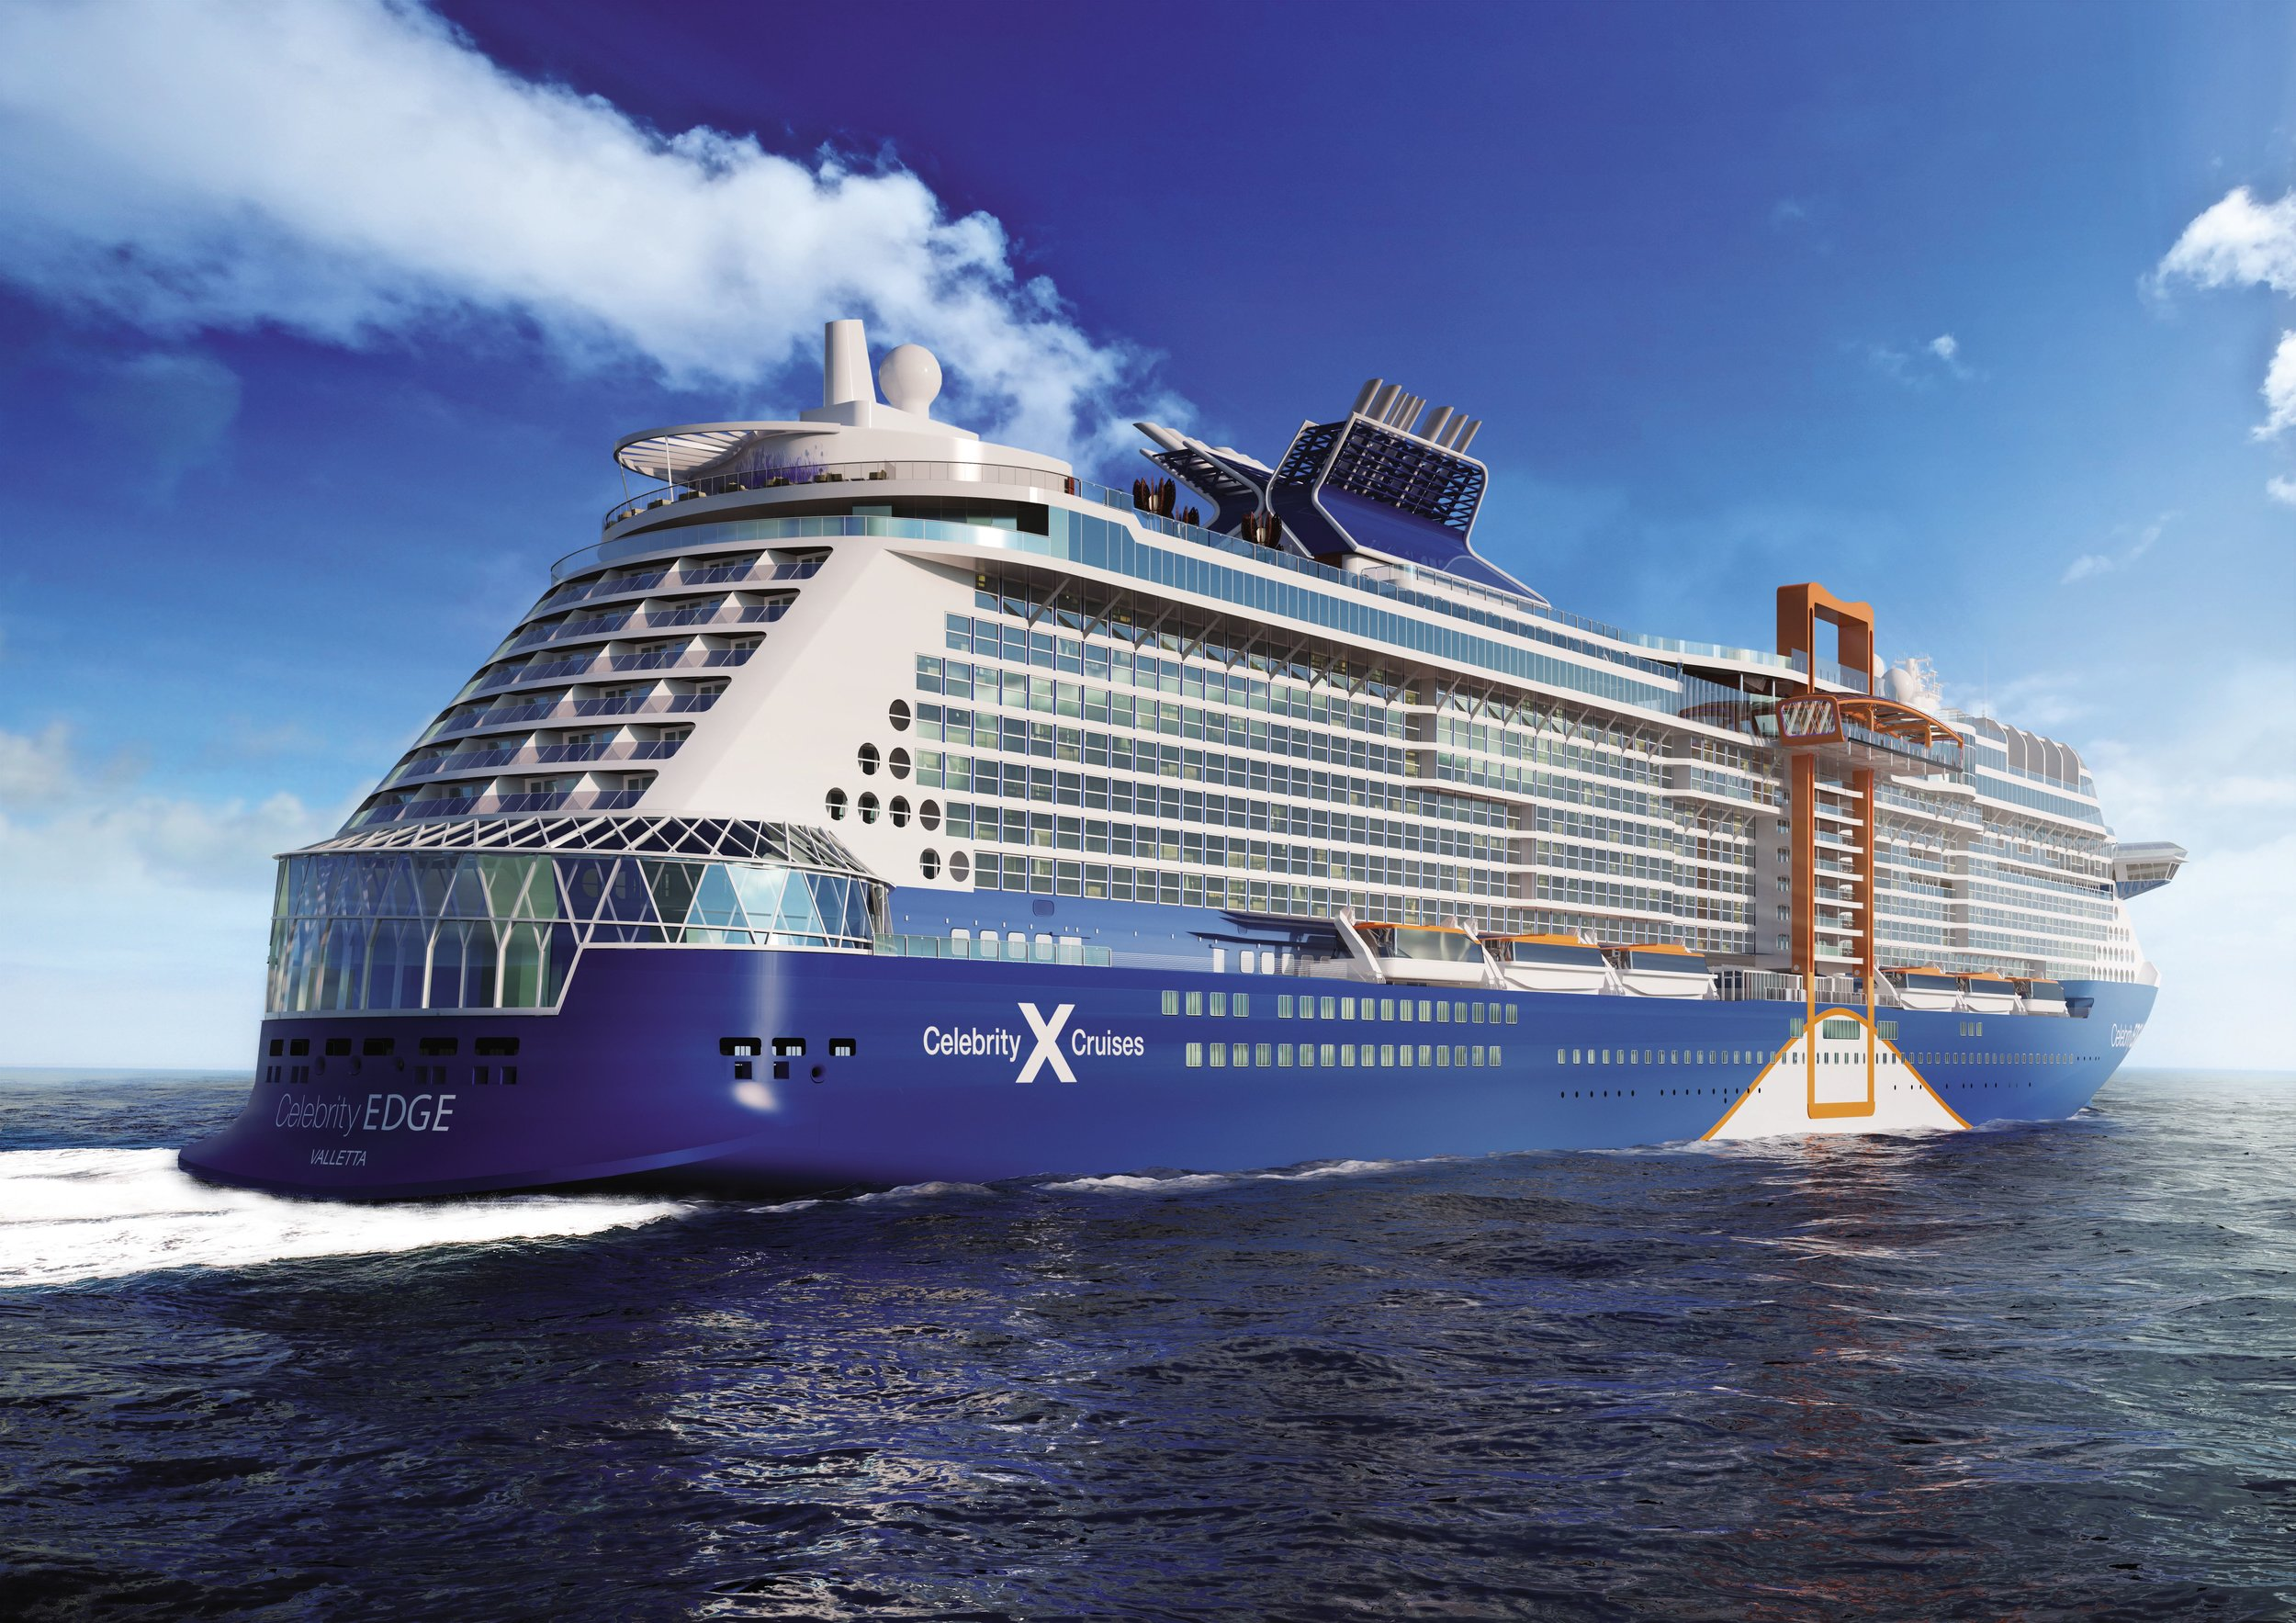 New celebrity edge is here - Be the first on board.